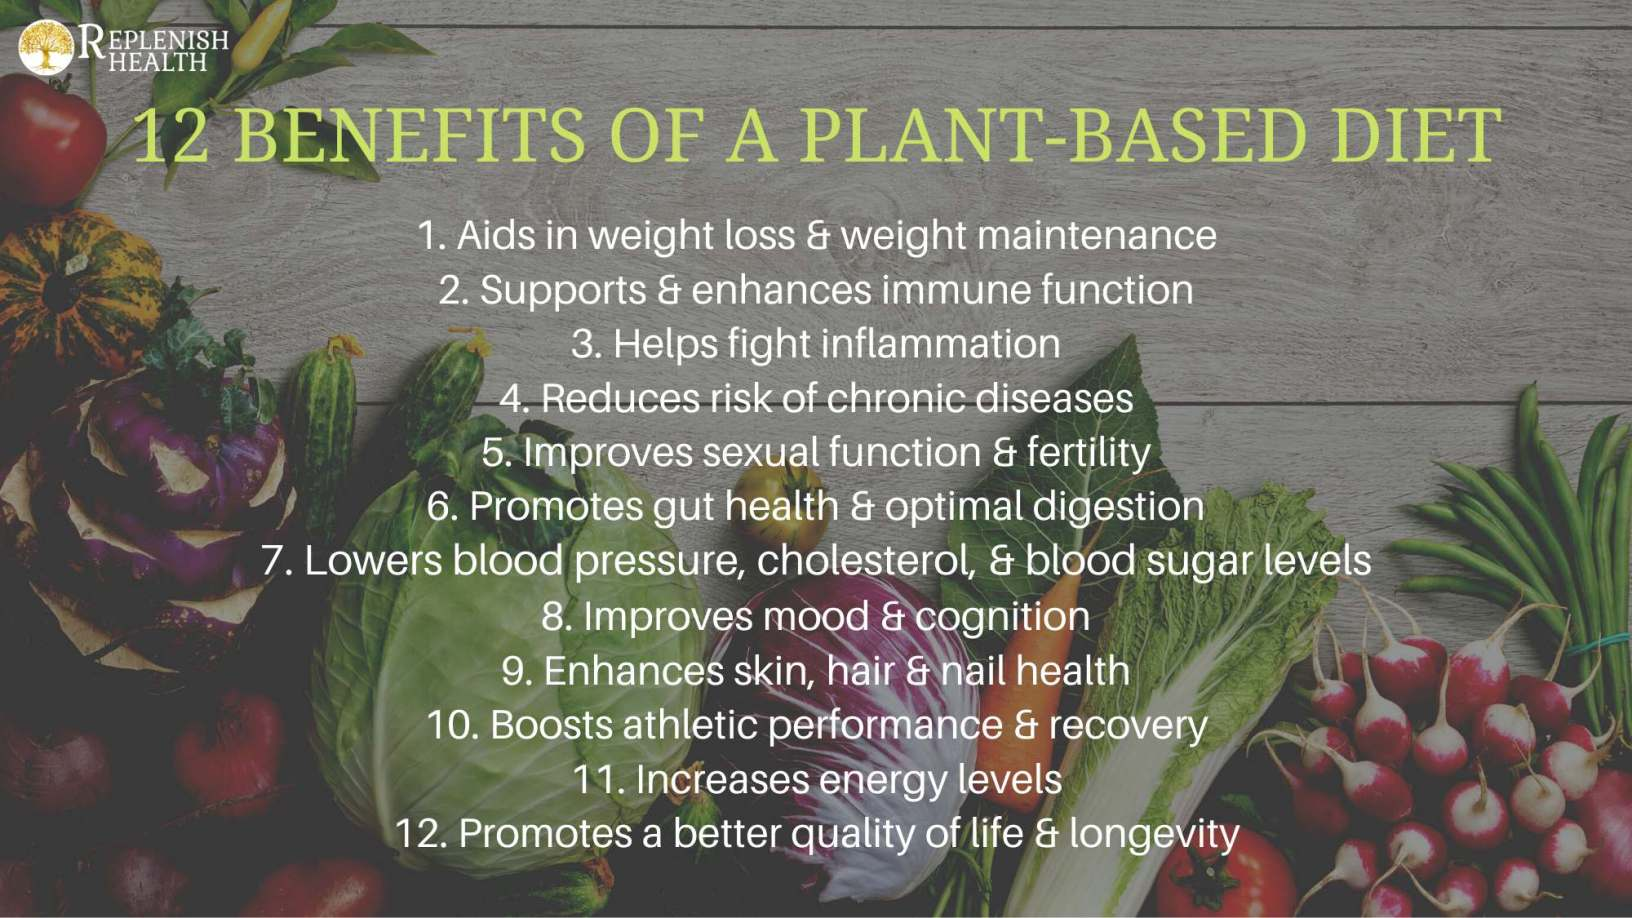 An image of 12 benefits of a plant-based diet.